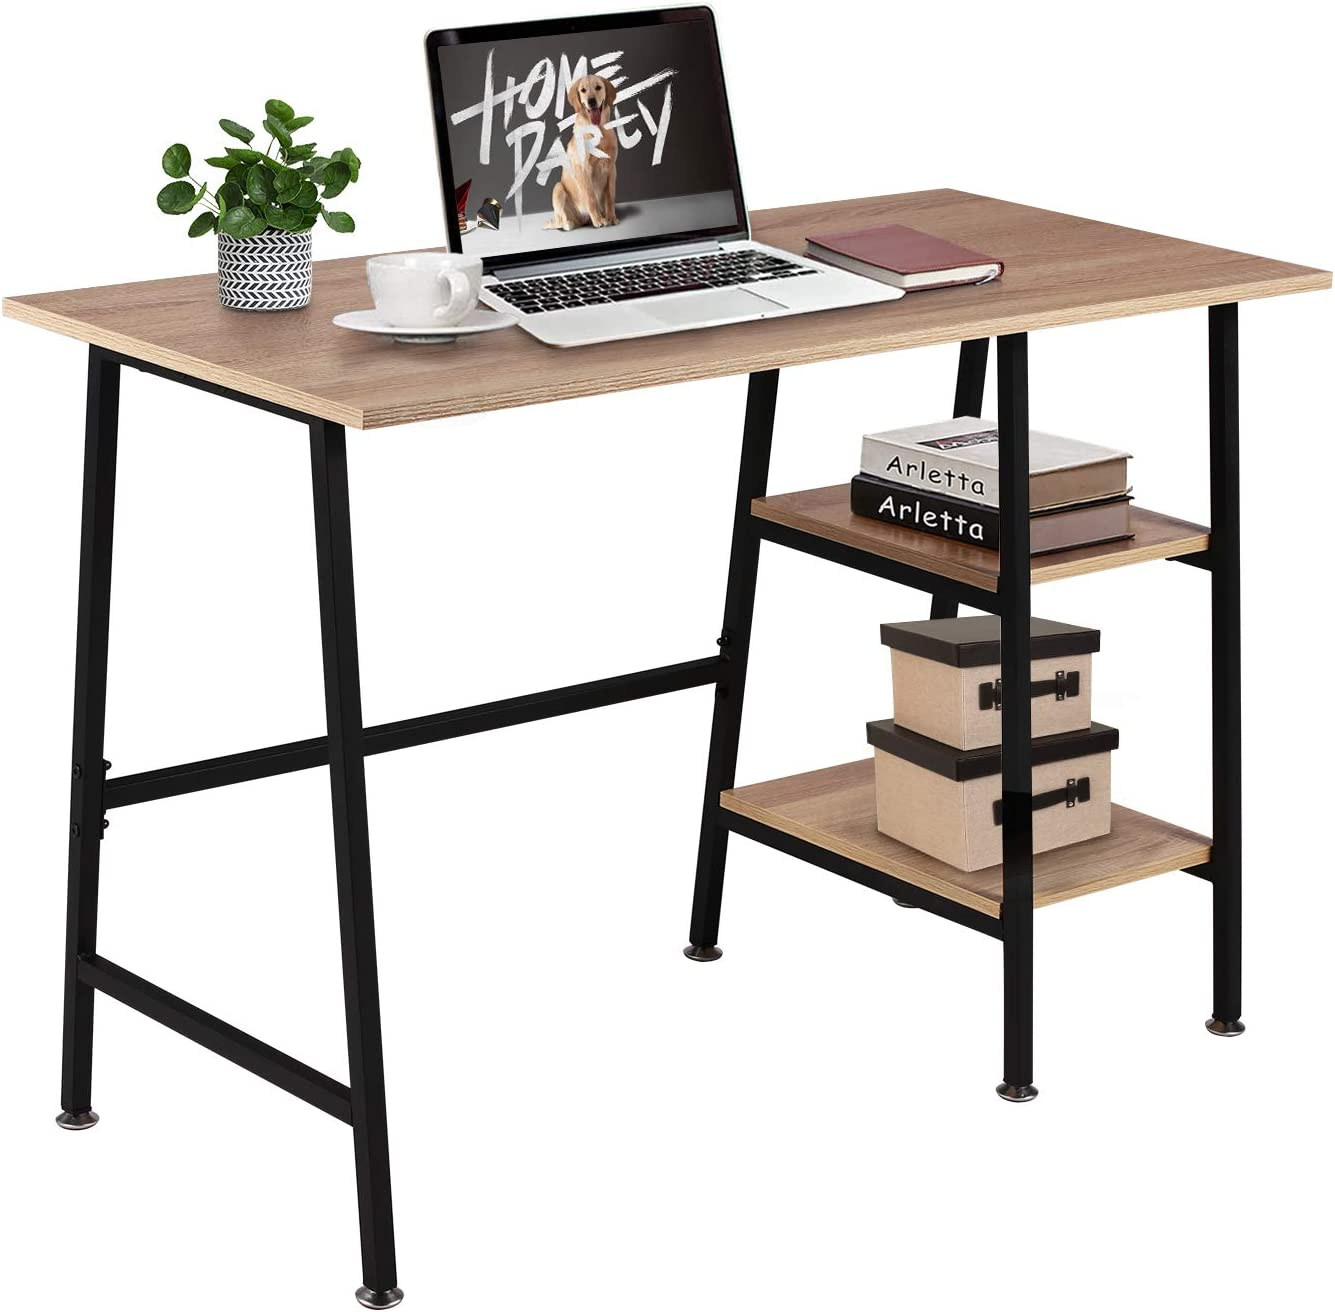 VECELO Computer Storage Workstation Study Desk Writing Table with 2 Tier Shelves for Office and Home, Oak